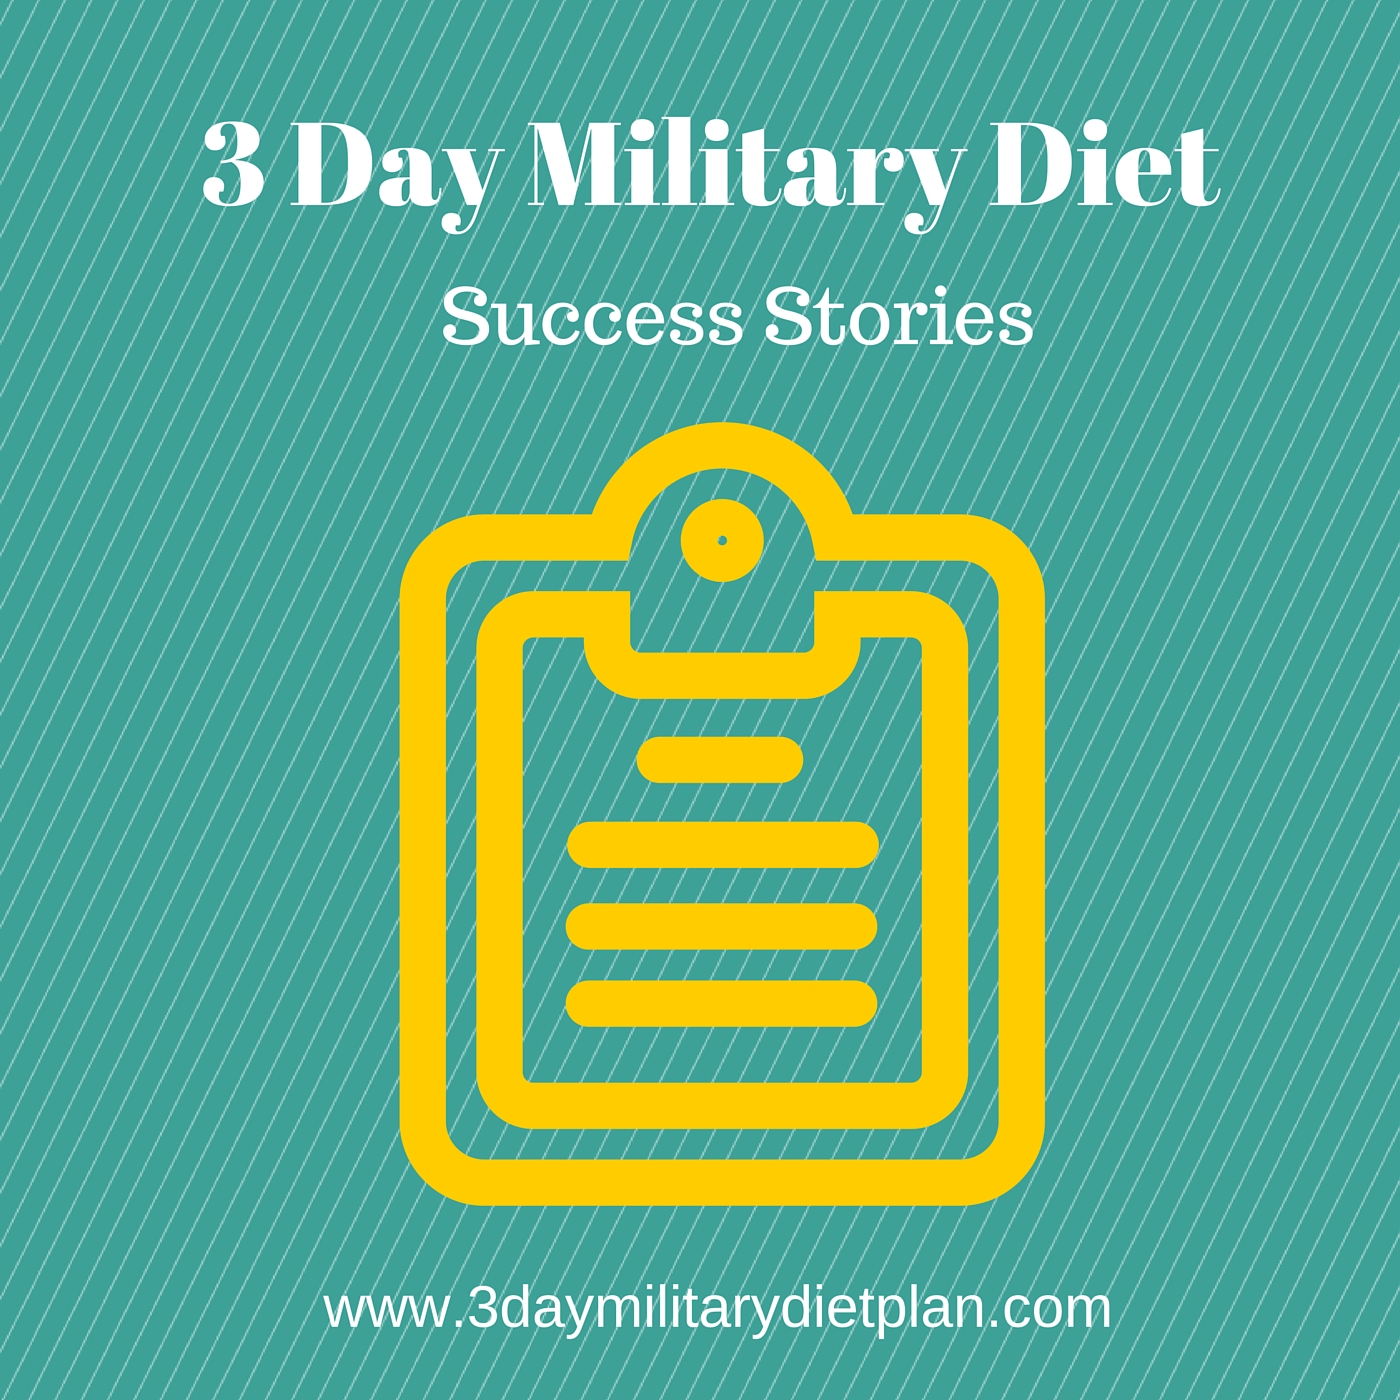 3 Day Military Diet Success Pictures to Pin on Pinterest ...